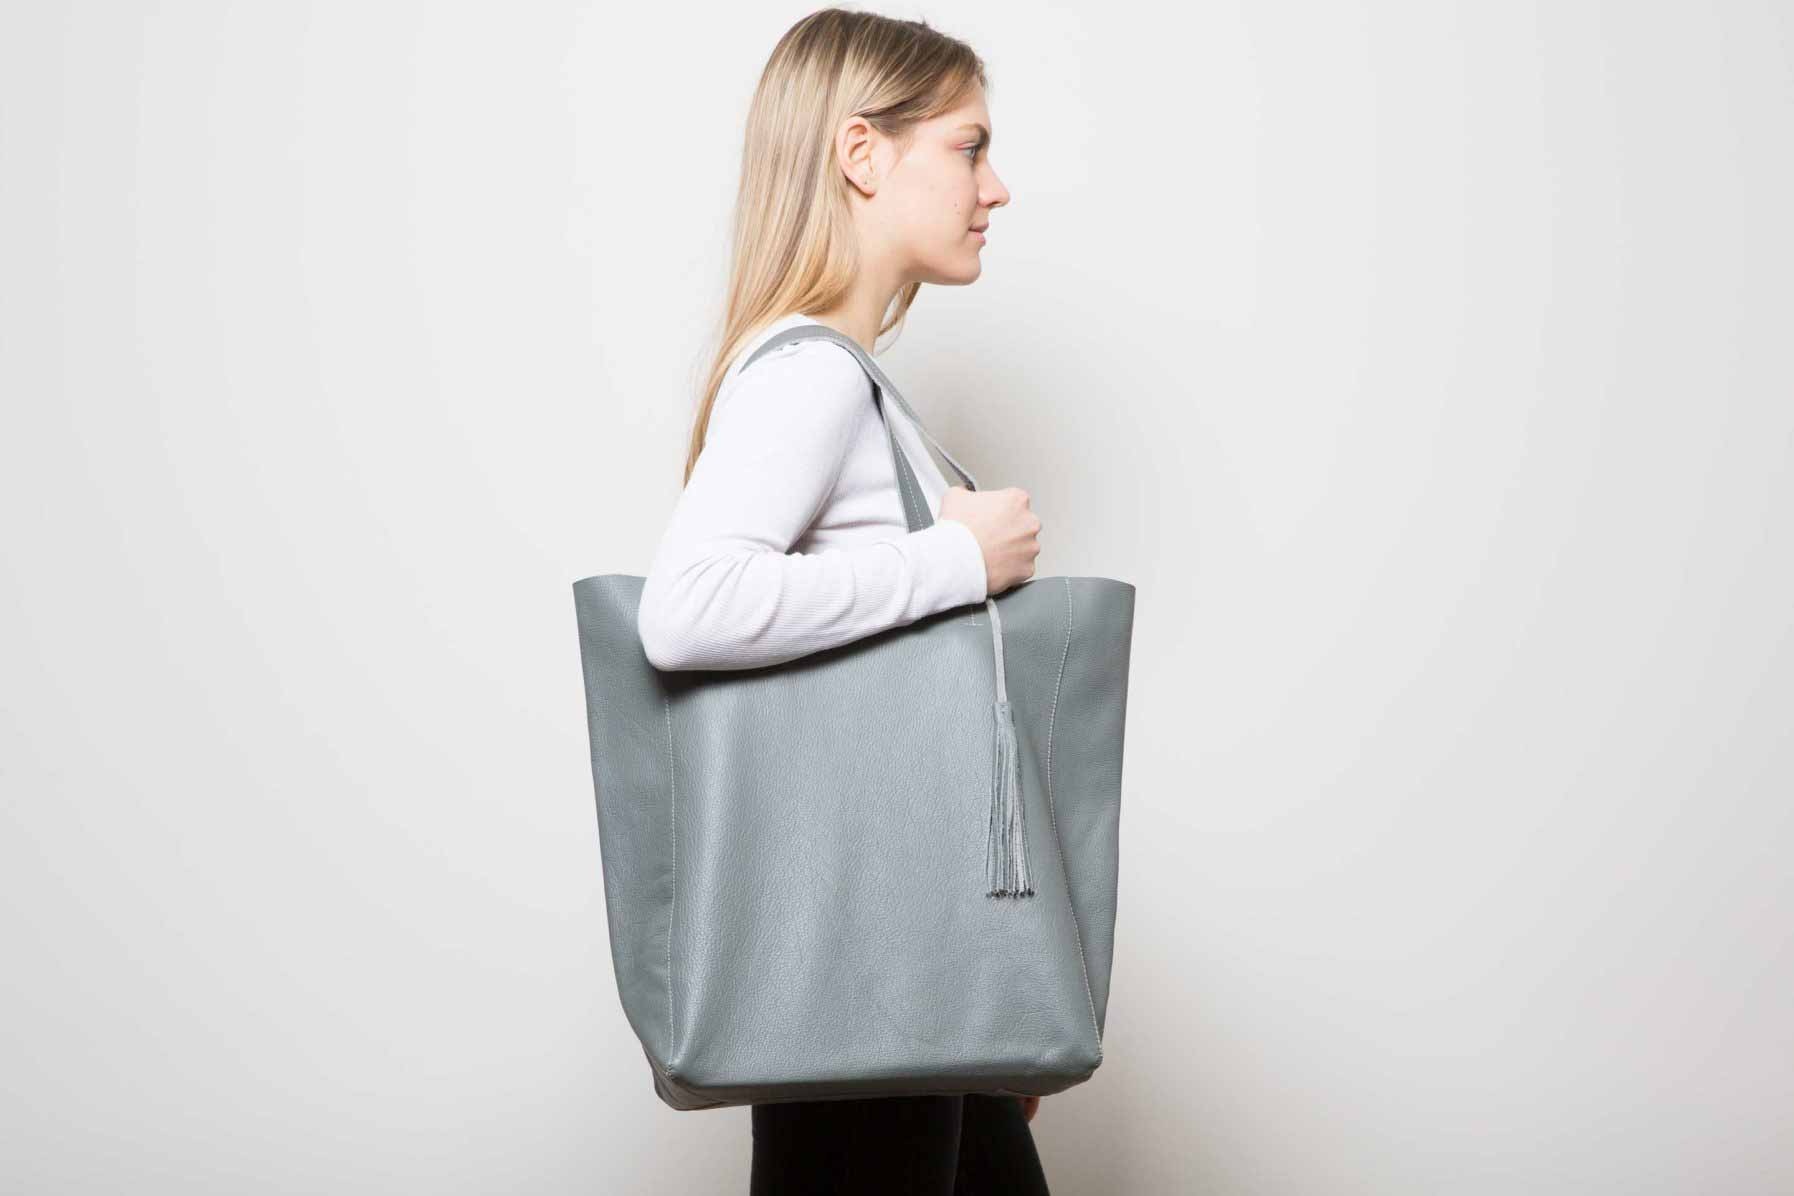 Visuel Sac - Grand Shopper Cuir Gris Ciment - Vue Profil - ordinari.shop